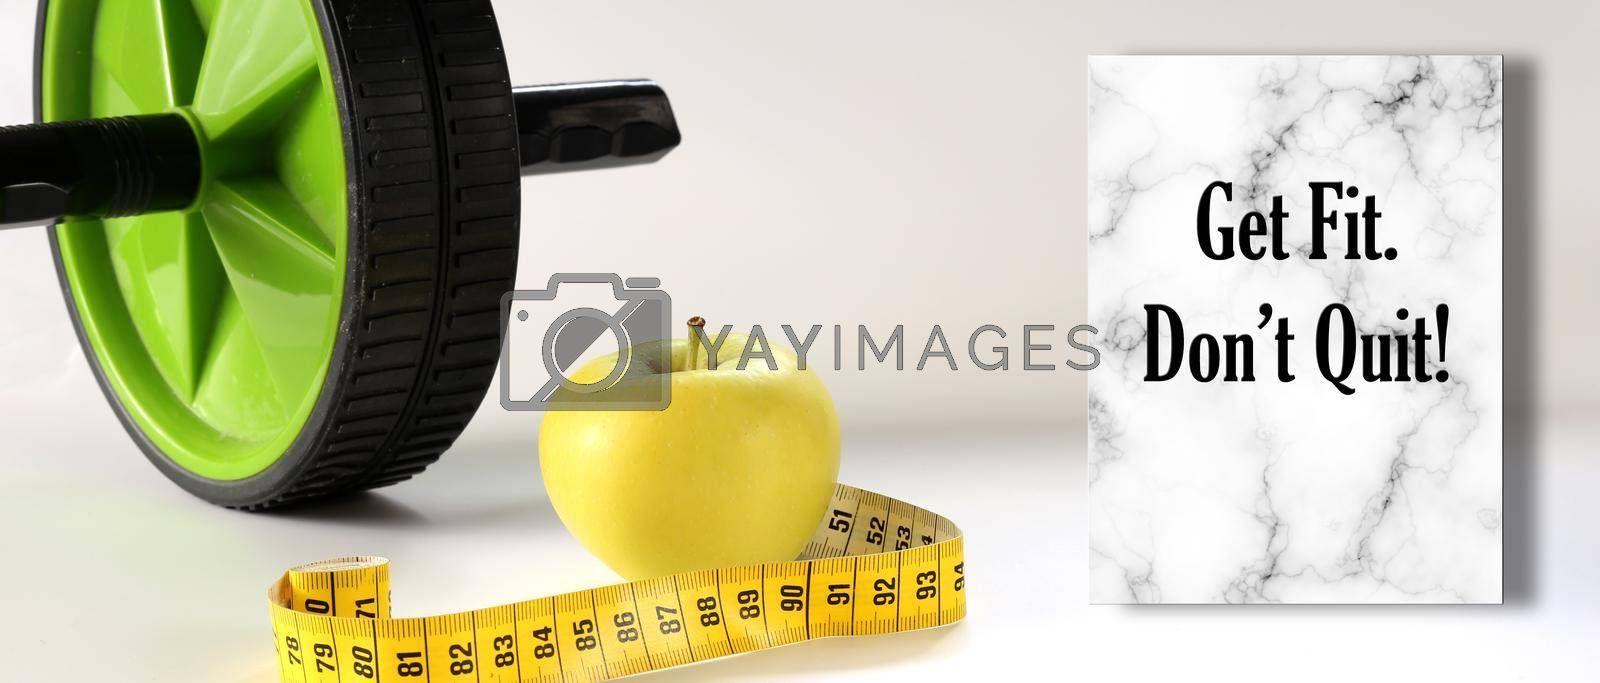 Healthy lifestyle motivational quote. Diet fitness and Healthy life Concept. Motivational Quote text Get Fit. Don't Quit. Apple, measure tape, sport home gym equipment ab roller for diet slimming